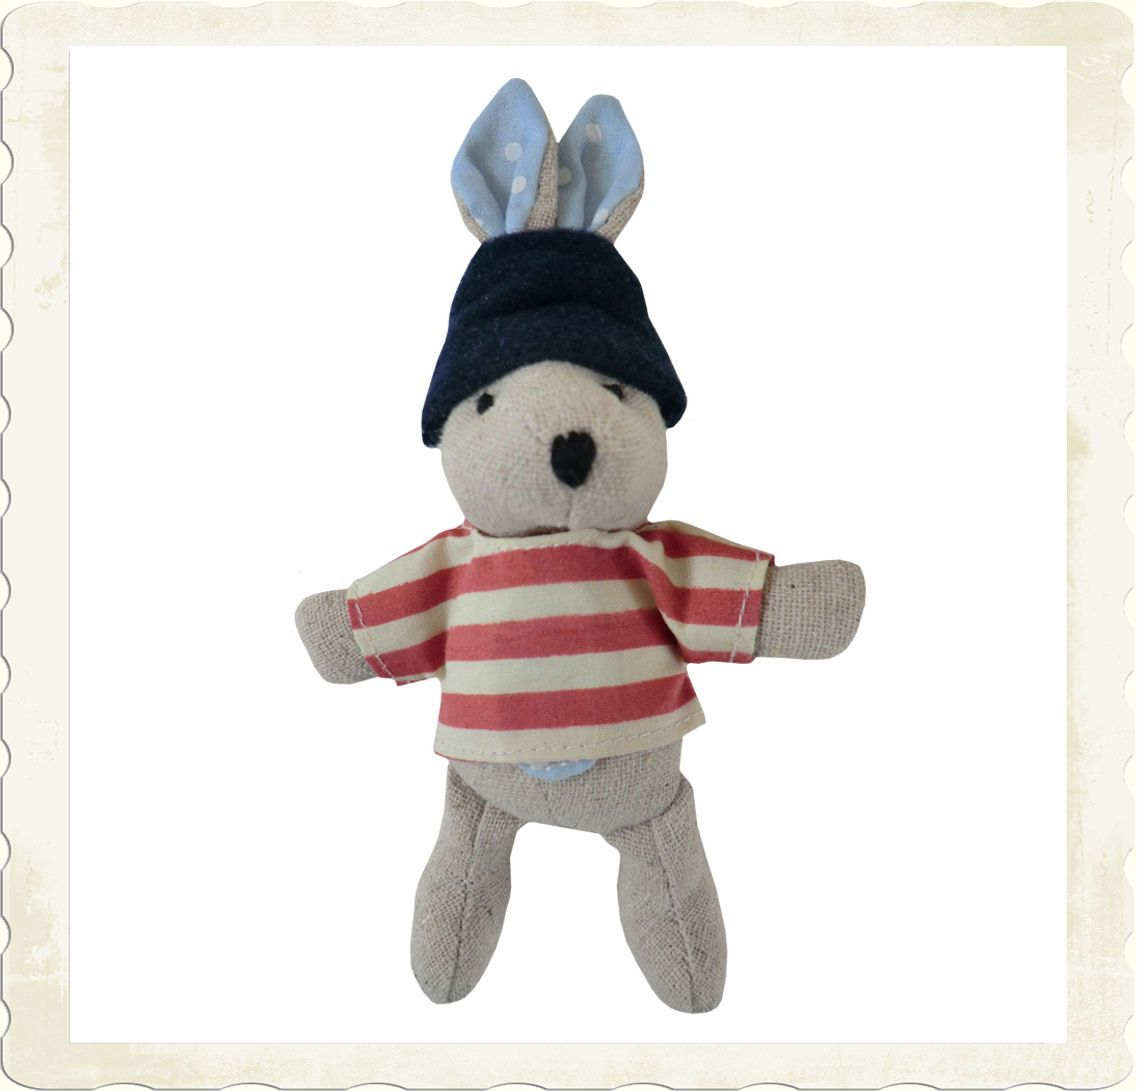 Rabbiteaster giftchildbaby gift gifts for children pinterest explore gifts for children easter gift and more negle Gallery